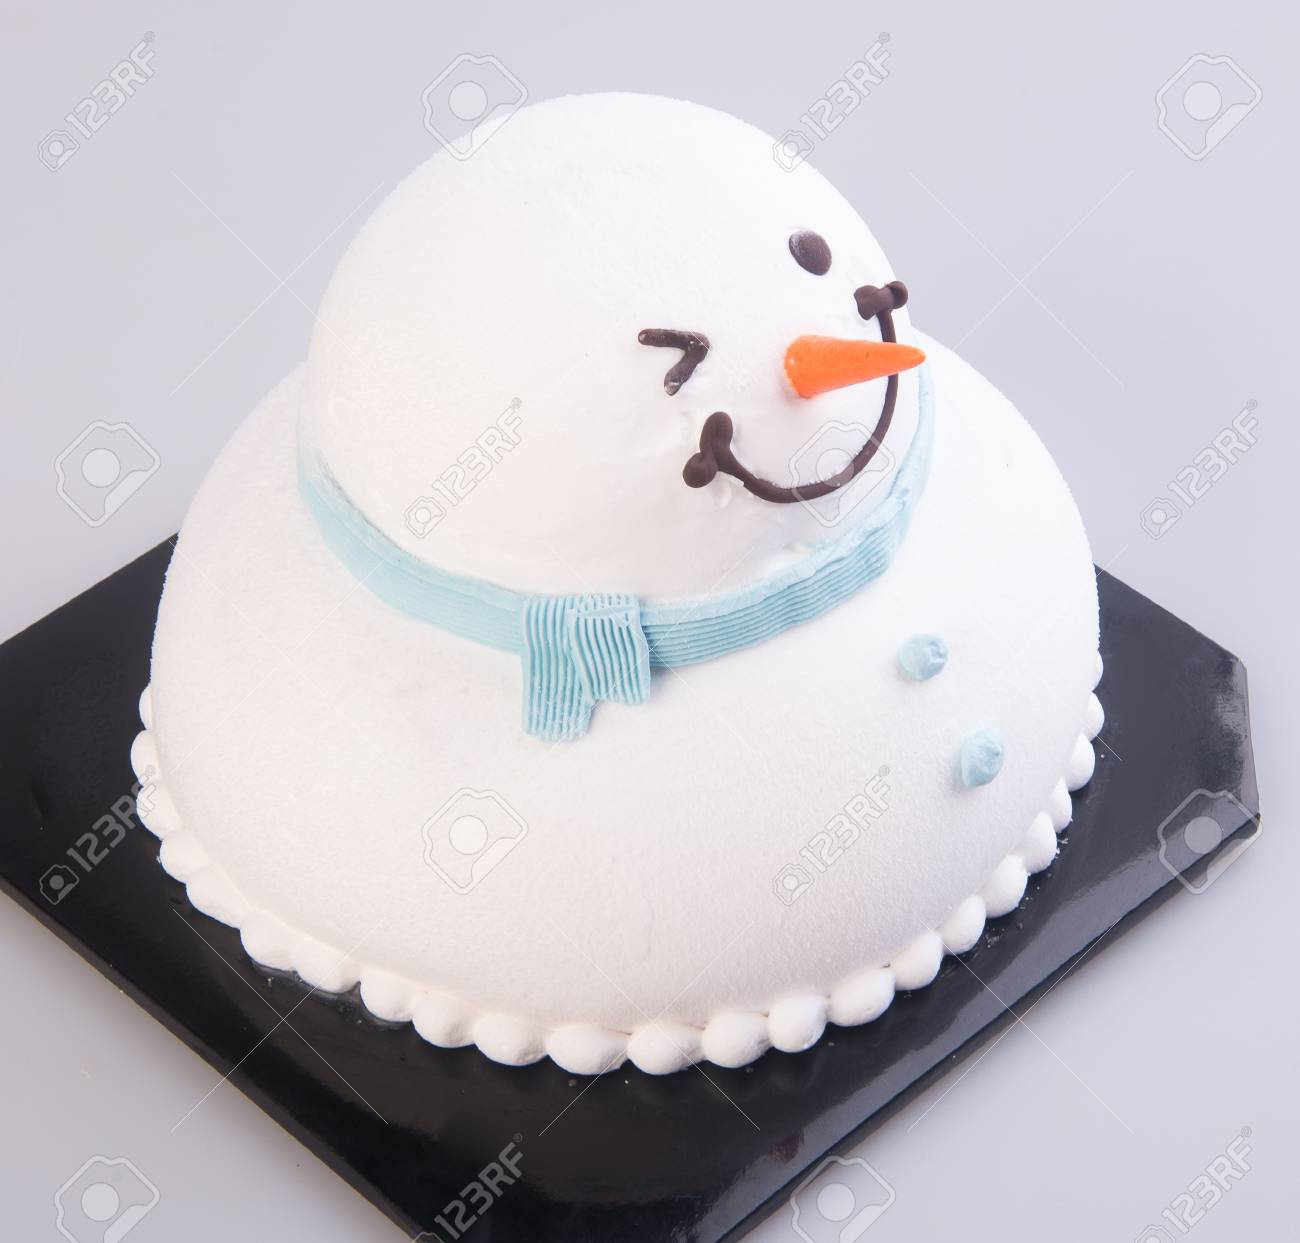 Super Cake Christmas Snowman Cakes On A Background Christmas Cakes Personalised Birthday Cards Petedlily Jamesorg